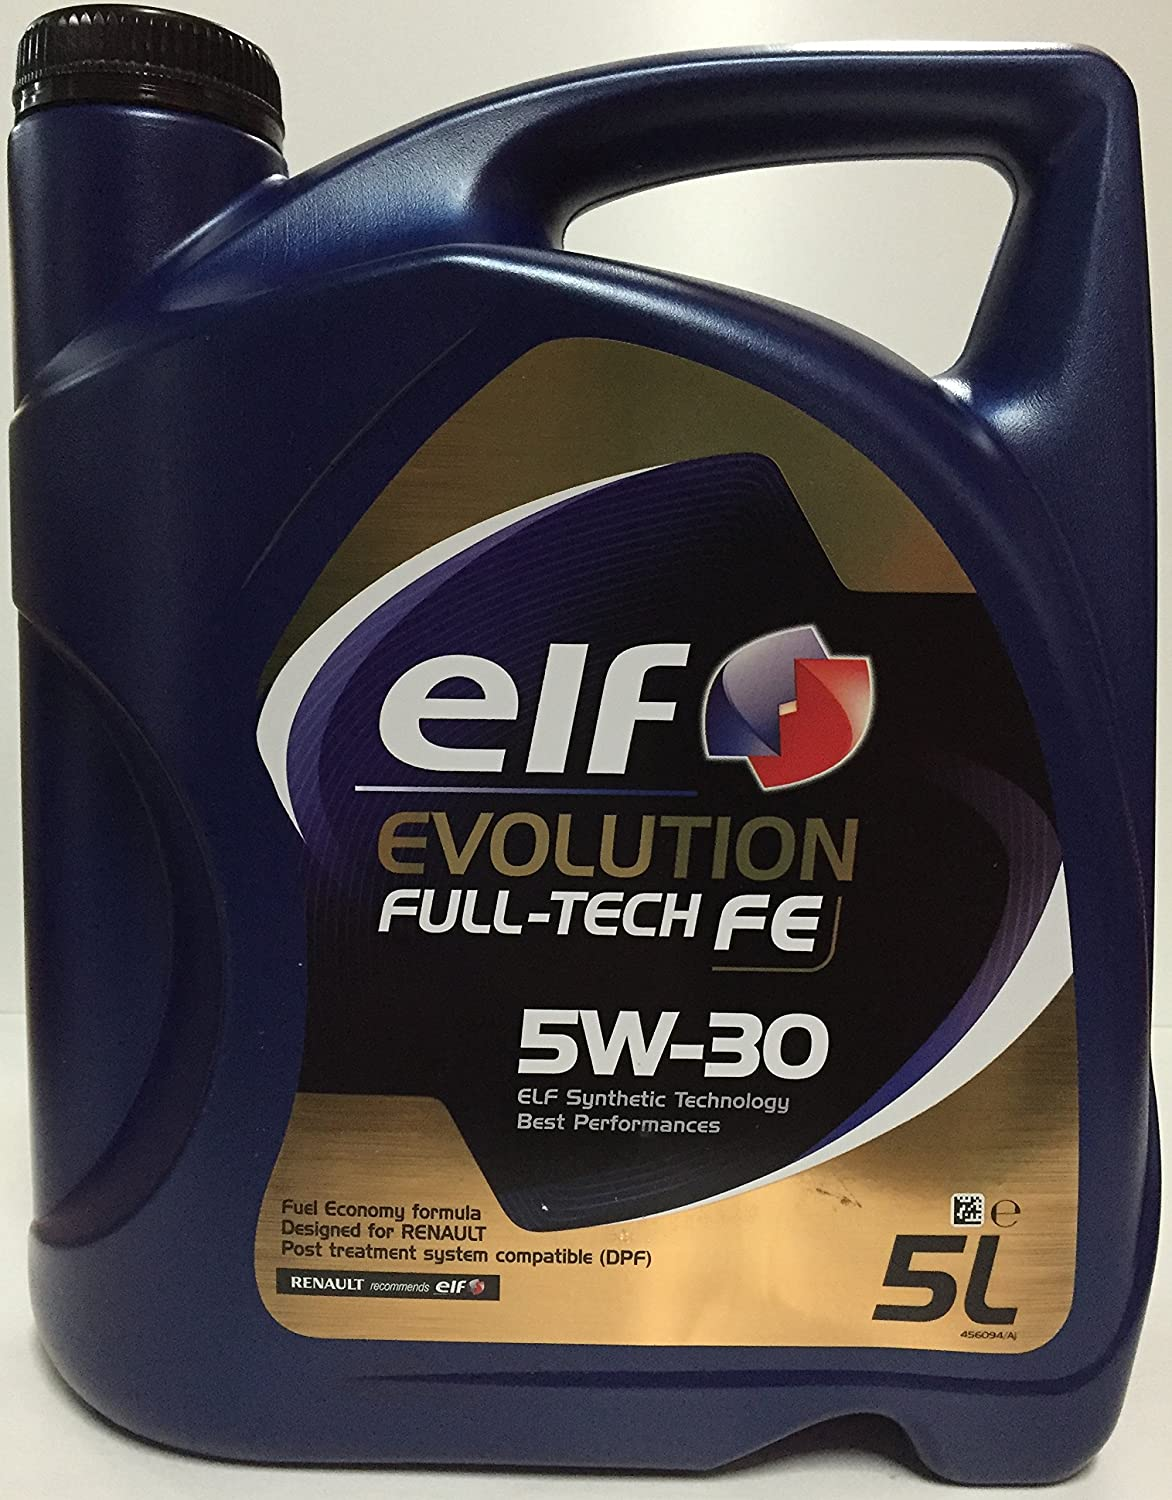 aceite motor ELF EVOLUTION Full-Tech FE 5W-30 5 litros (5 Ltrs=1 x 5 L): Amazon.es: Coche y moto